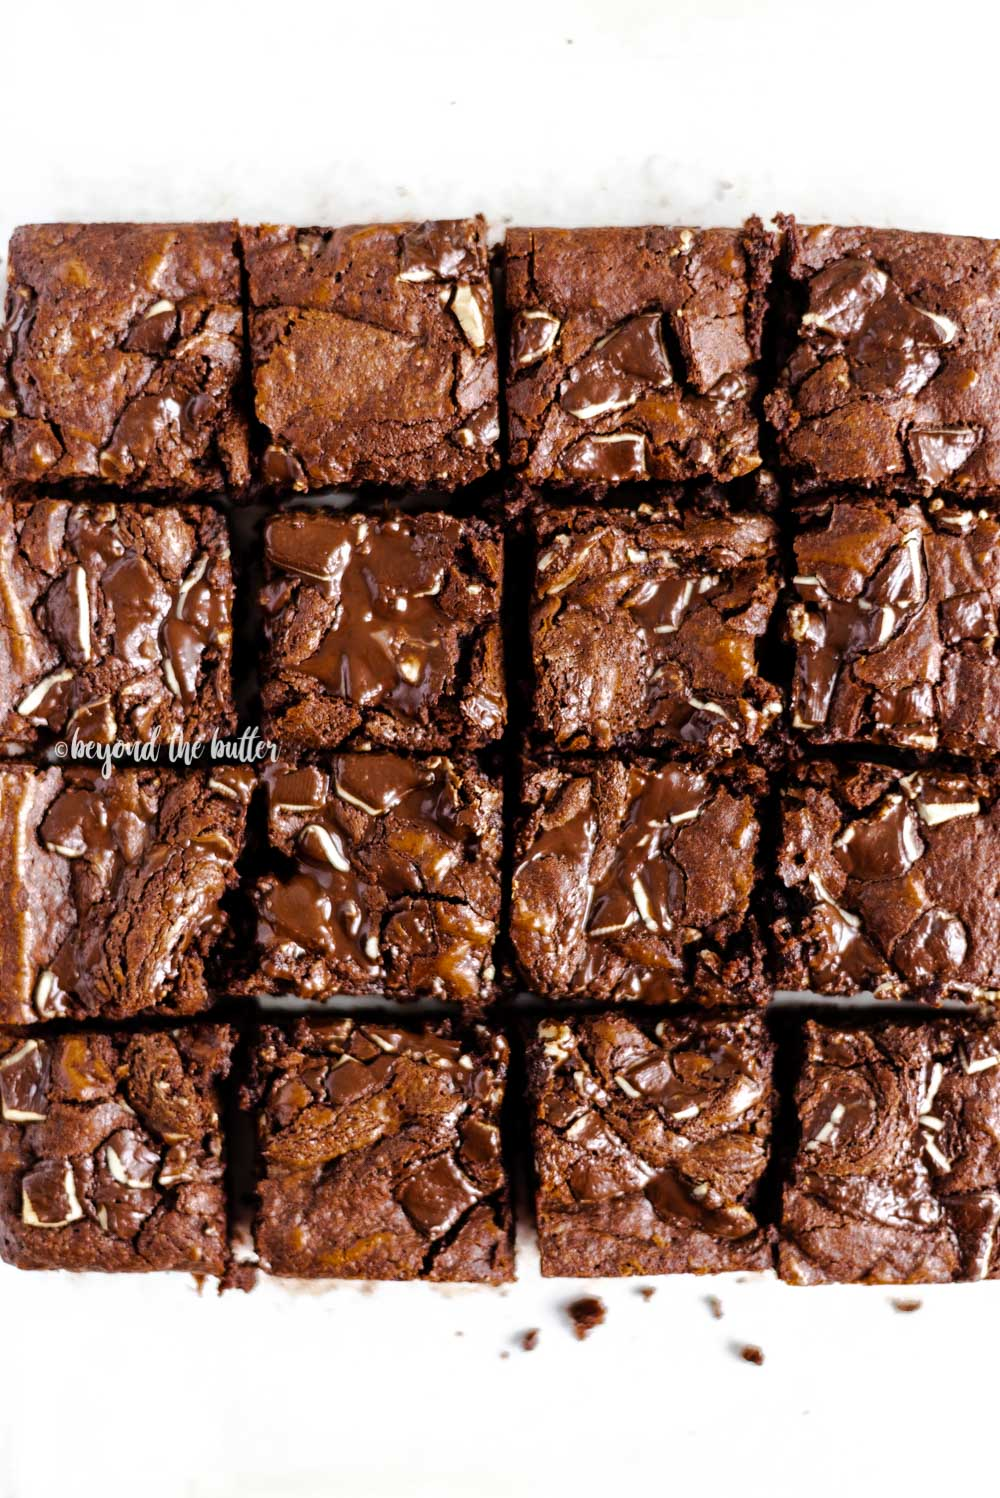 Overhead image of Double Chocolate Mint Brownies cut into squares | All Images © Beyond the Butter™